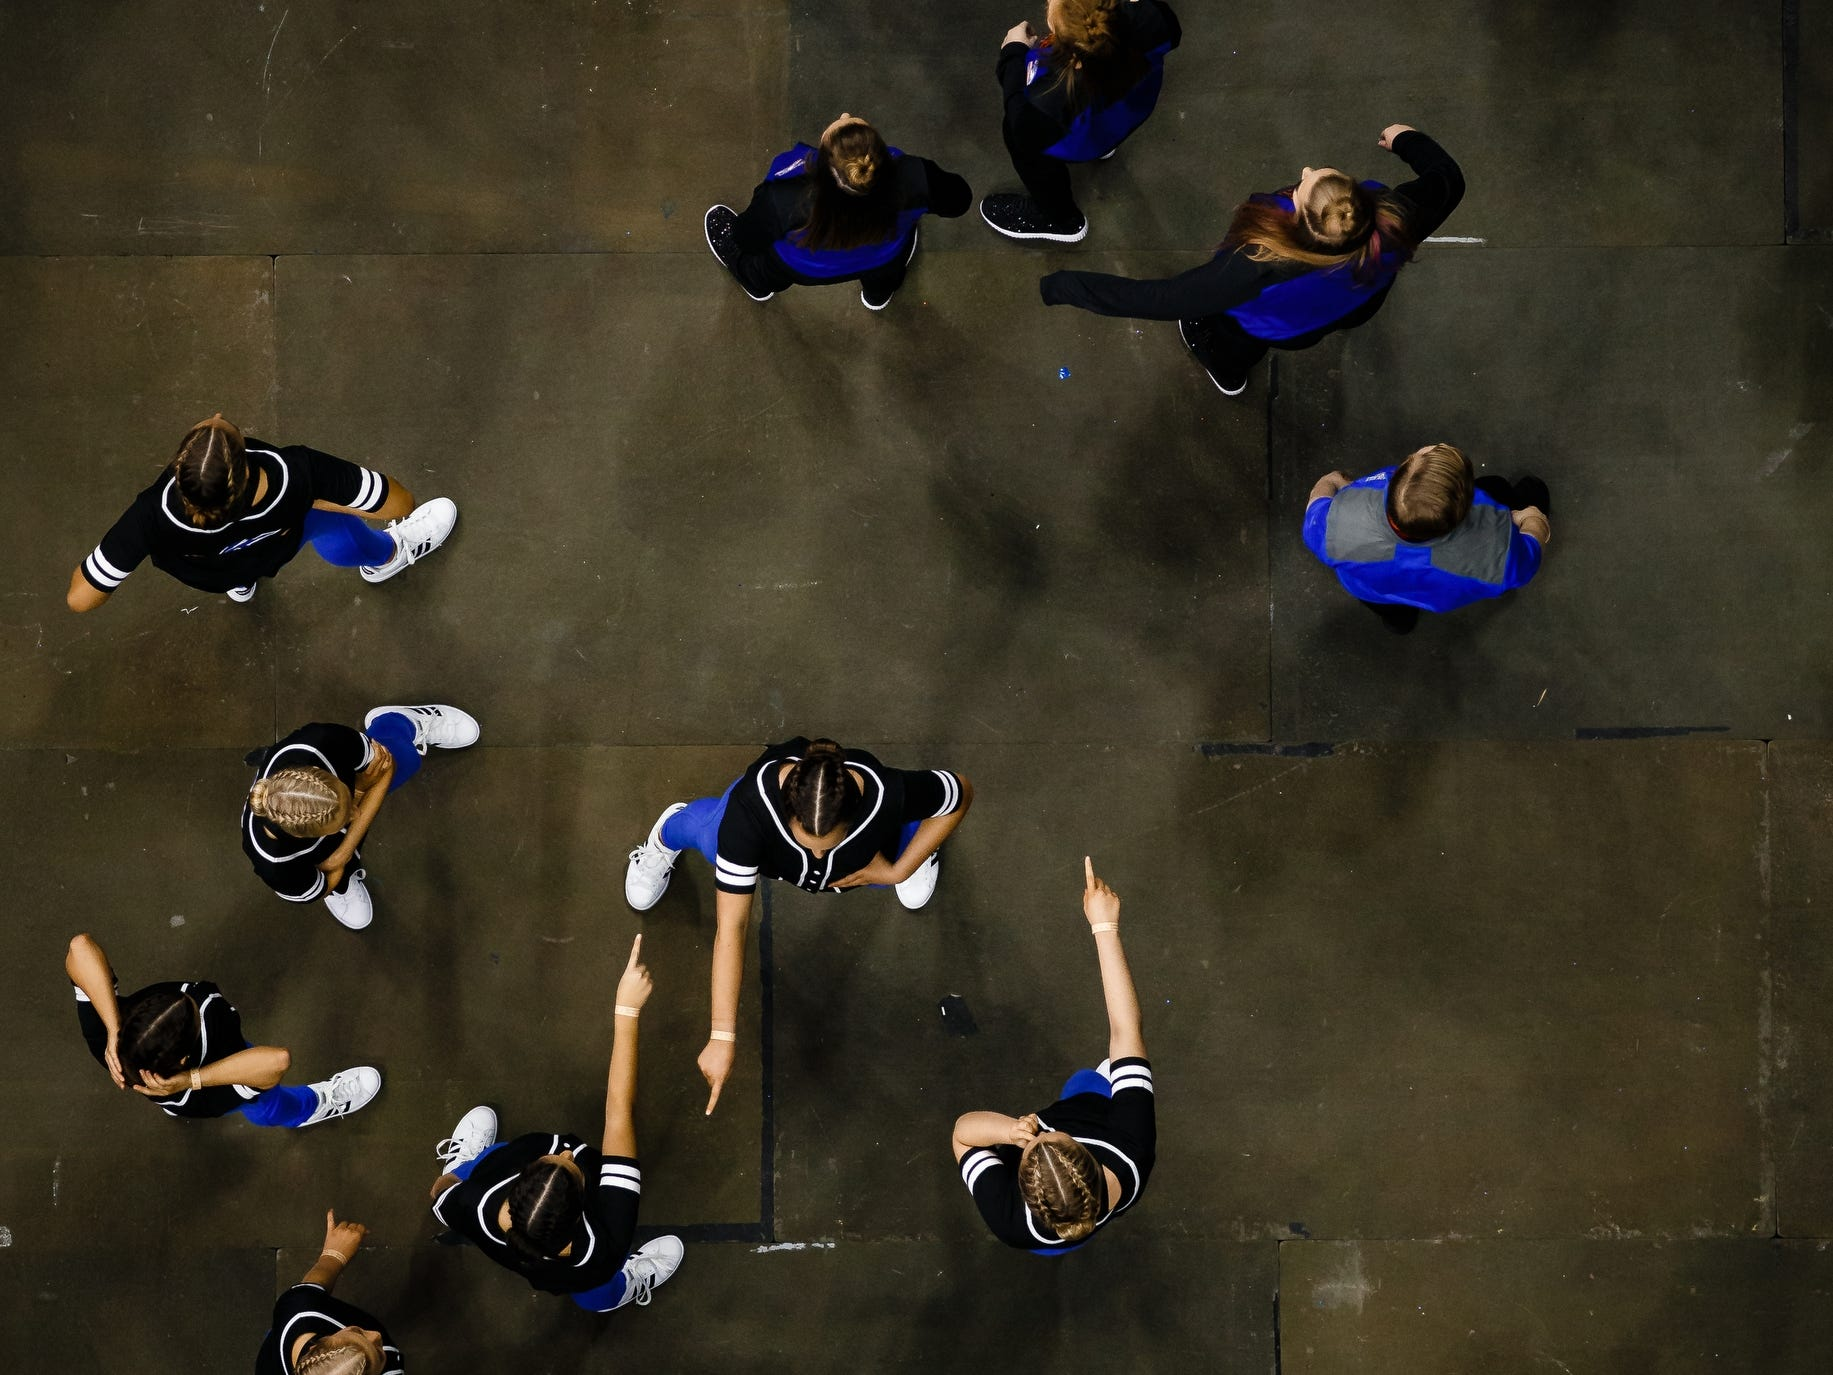 Teams warm up before performing at the Iowa Dance State Championships at Wells Fargo Arena on Friday, Nov. 30, 2018, in Des Moines.